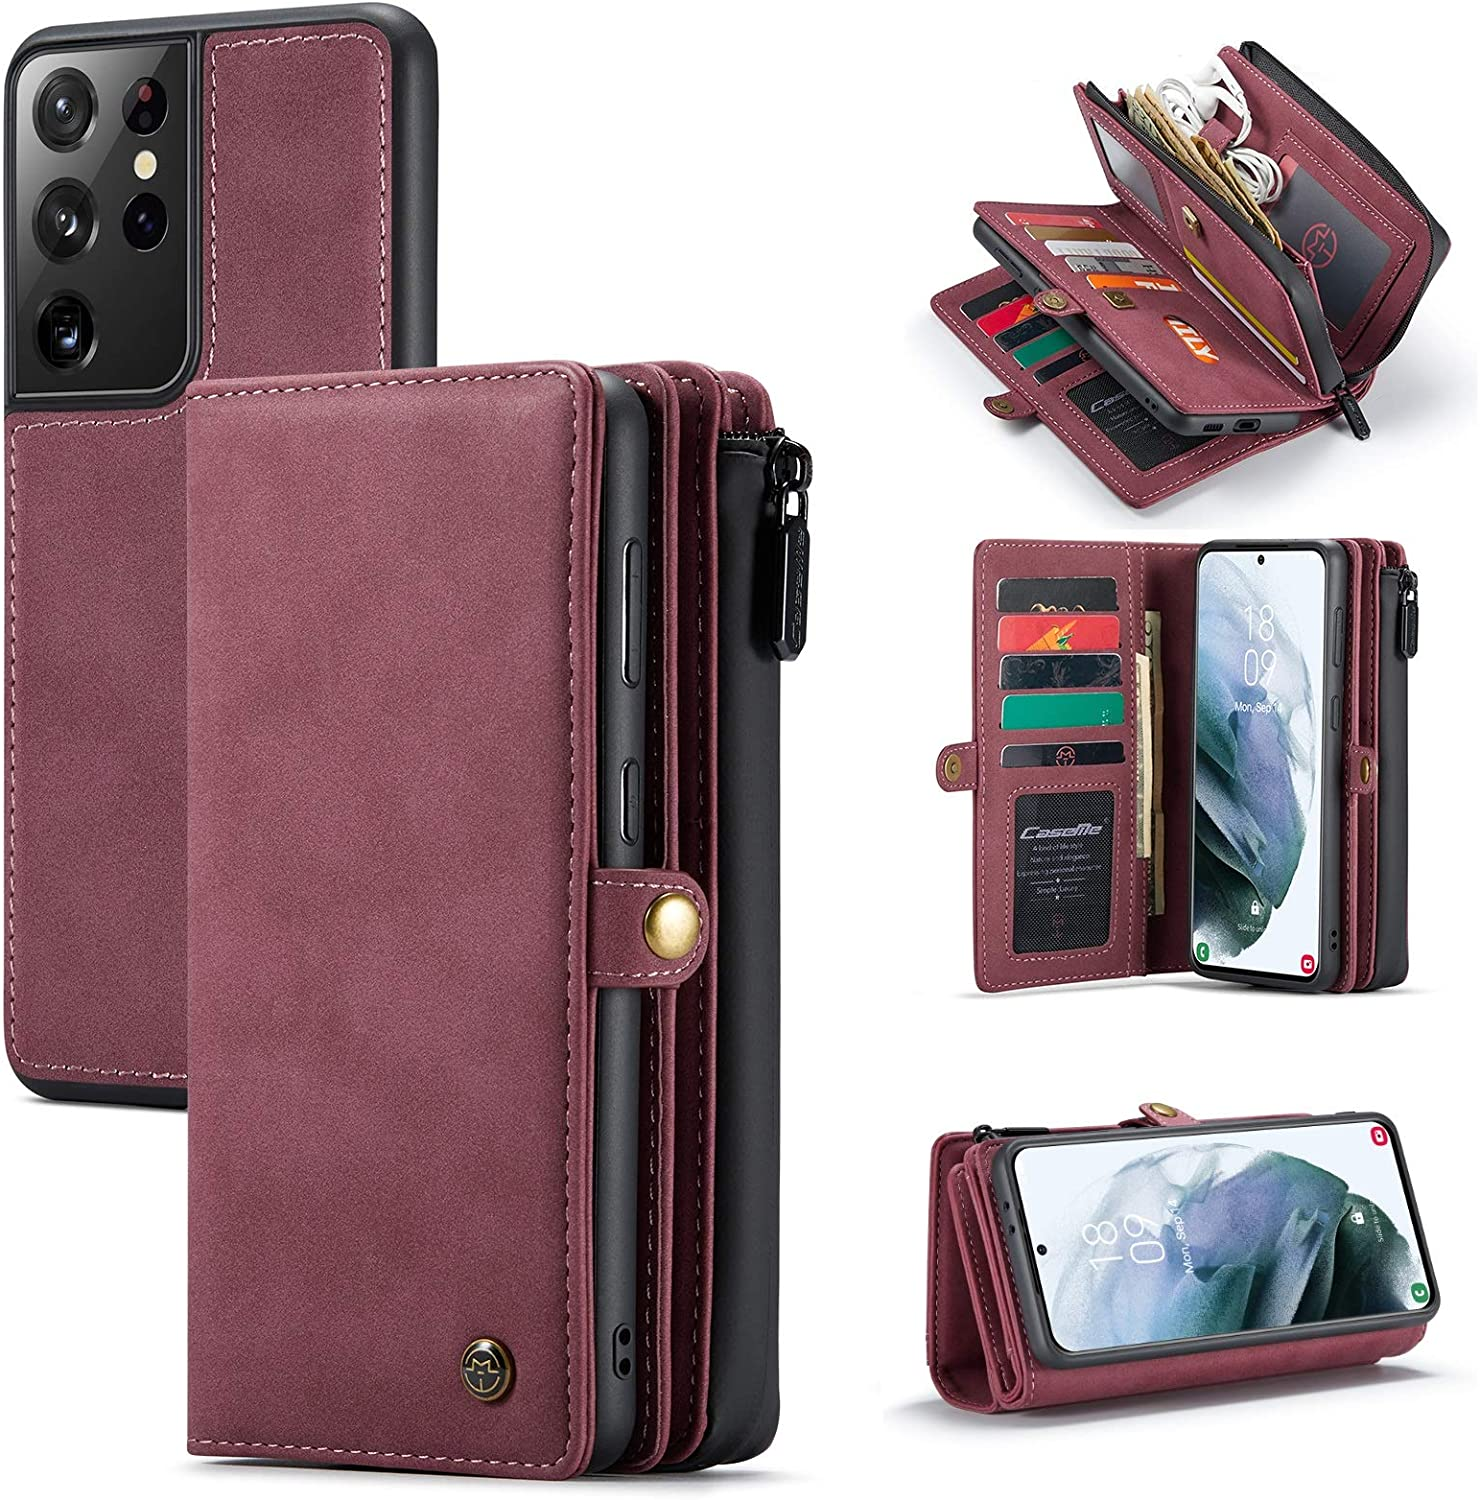 Samsung S21 Series Leather Magnetic Detachable Leather Wallet Case with Card Slots S21  S21 Plus  S21 Ultra Snap On Protective Back Cover